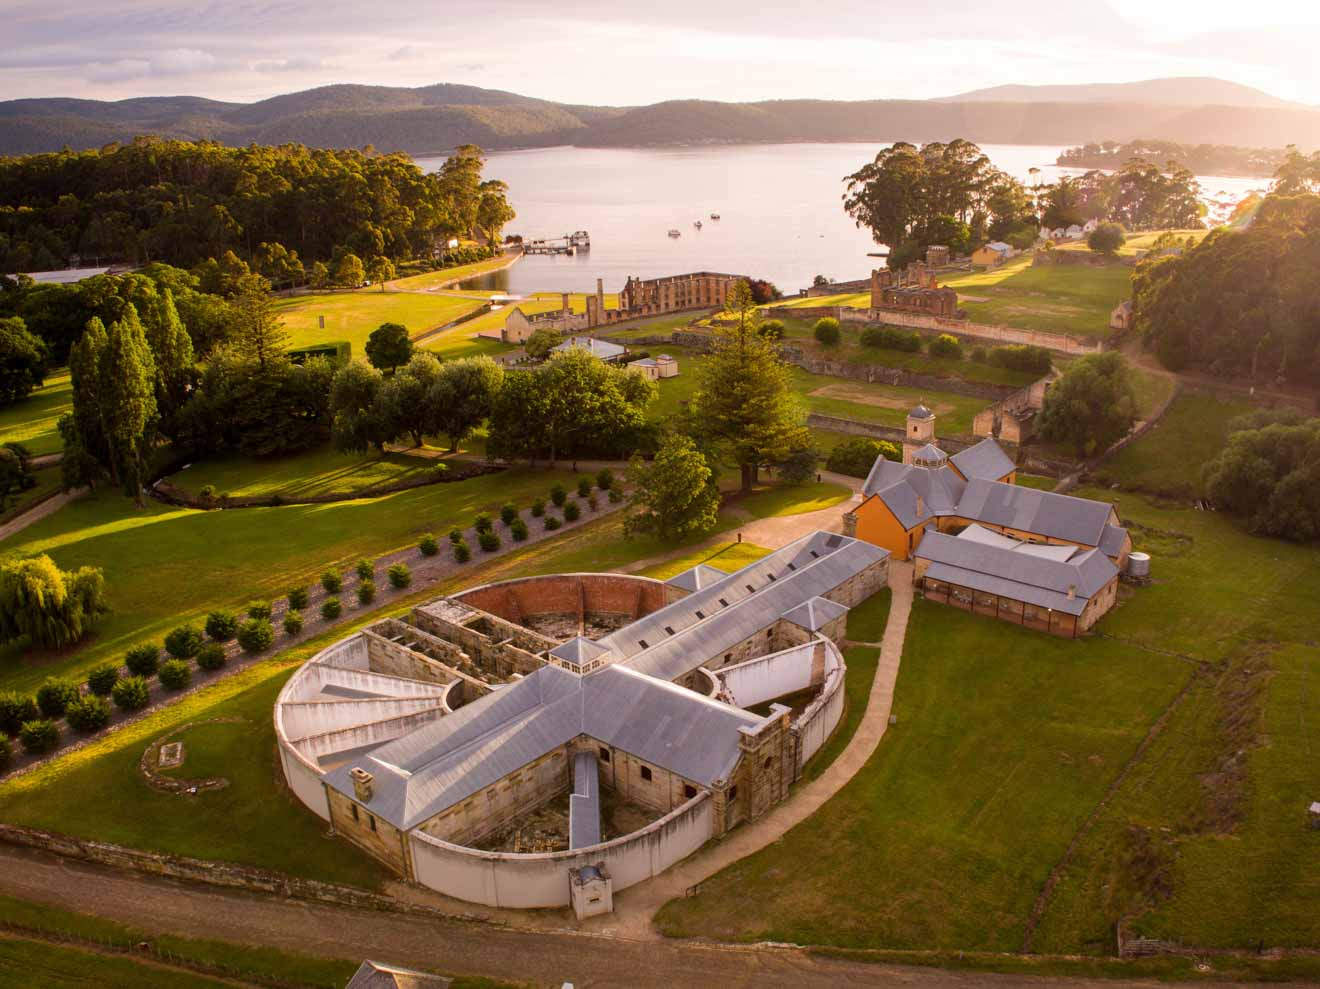 Port Arthur Historic Site tasmania Aerial view